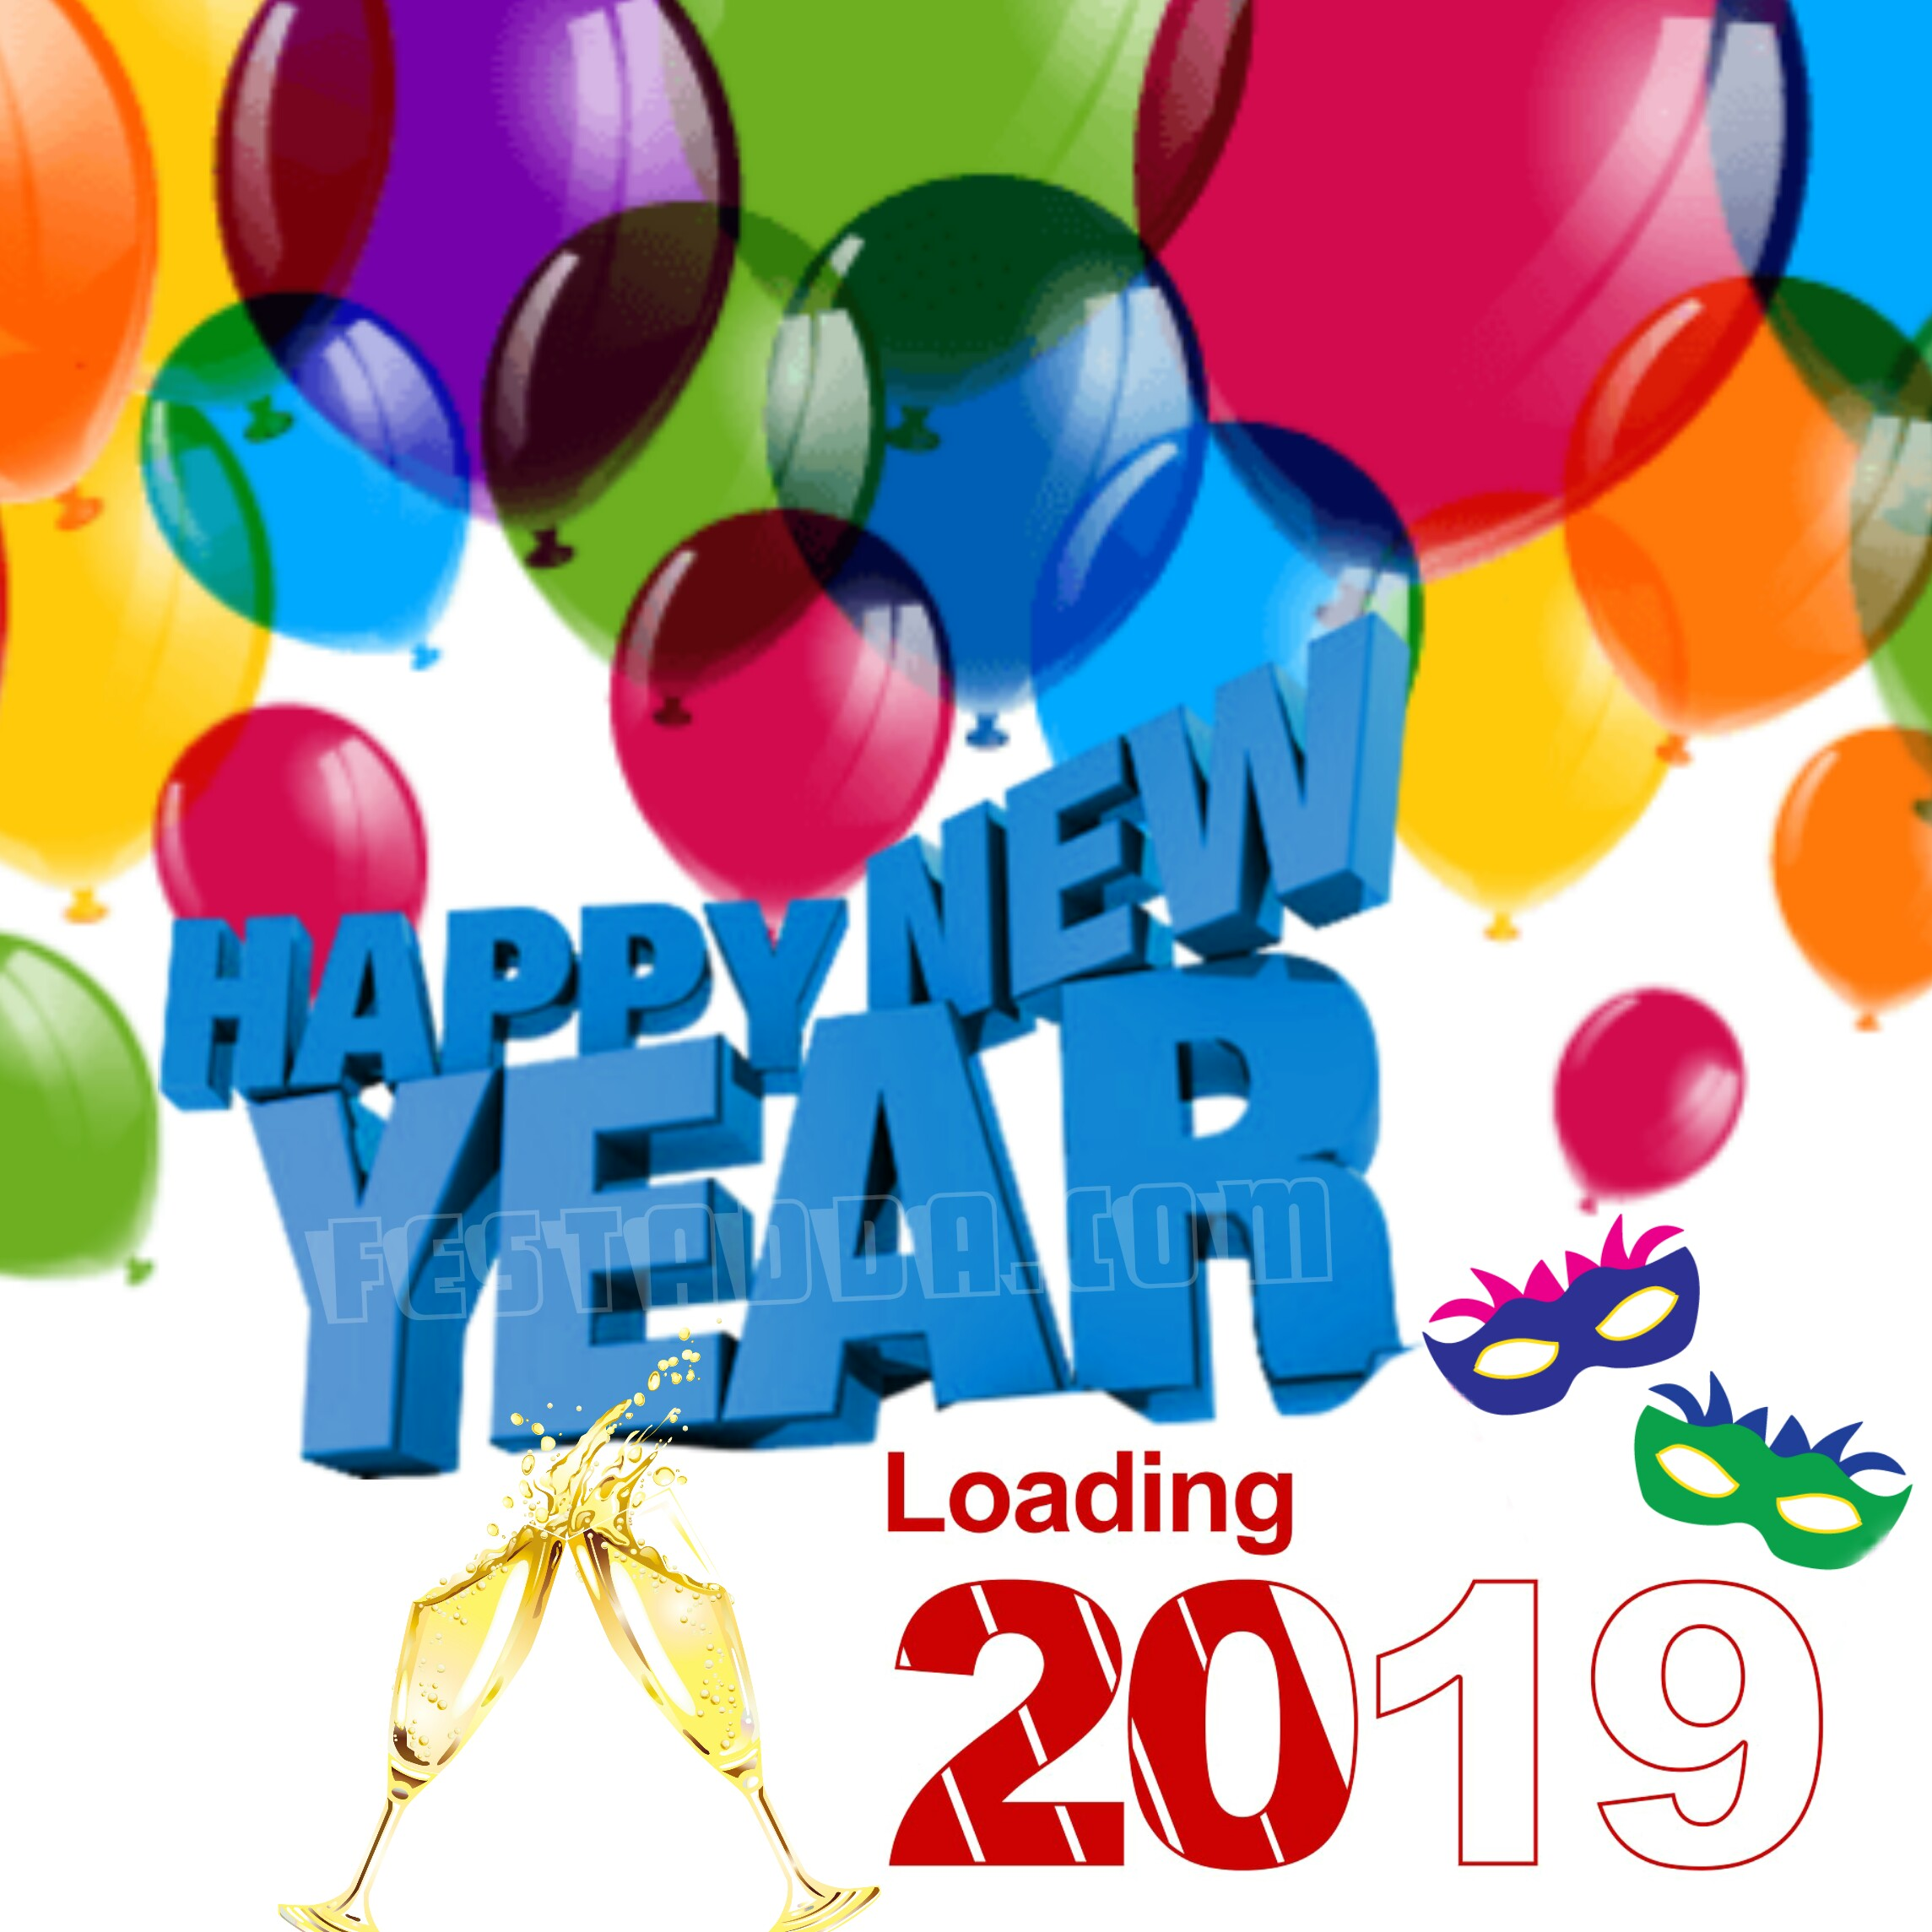 Free Happy New Year Clipart 2020 Images Pics For Whatsapp & FB DP.